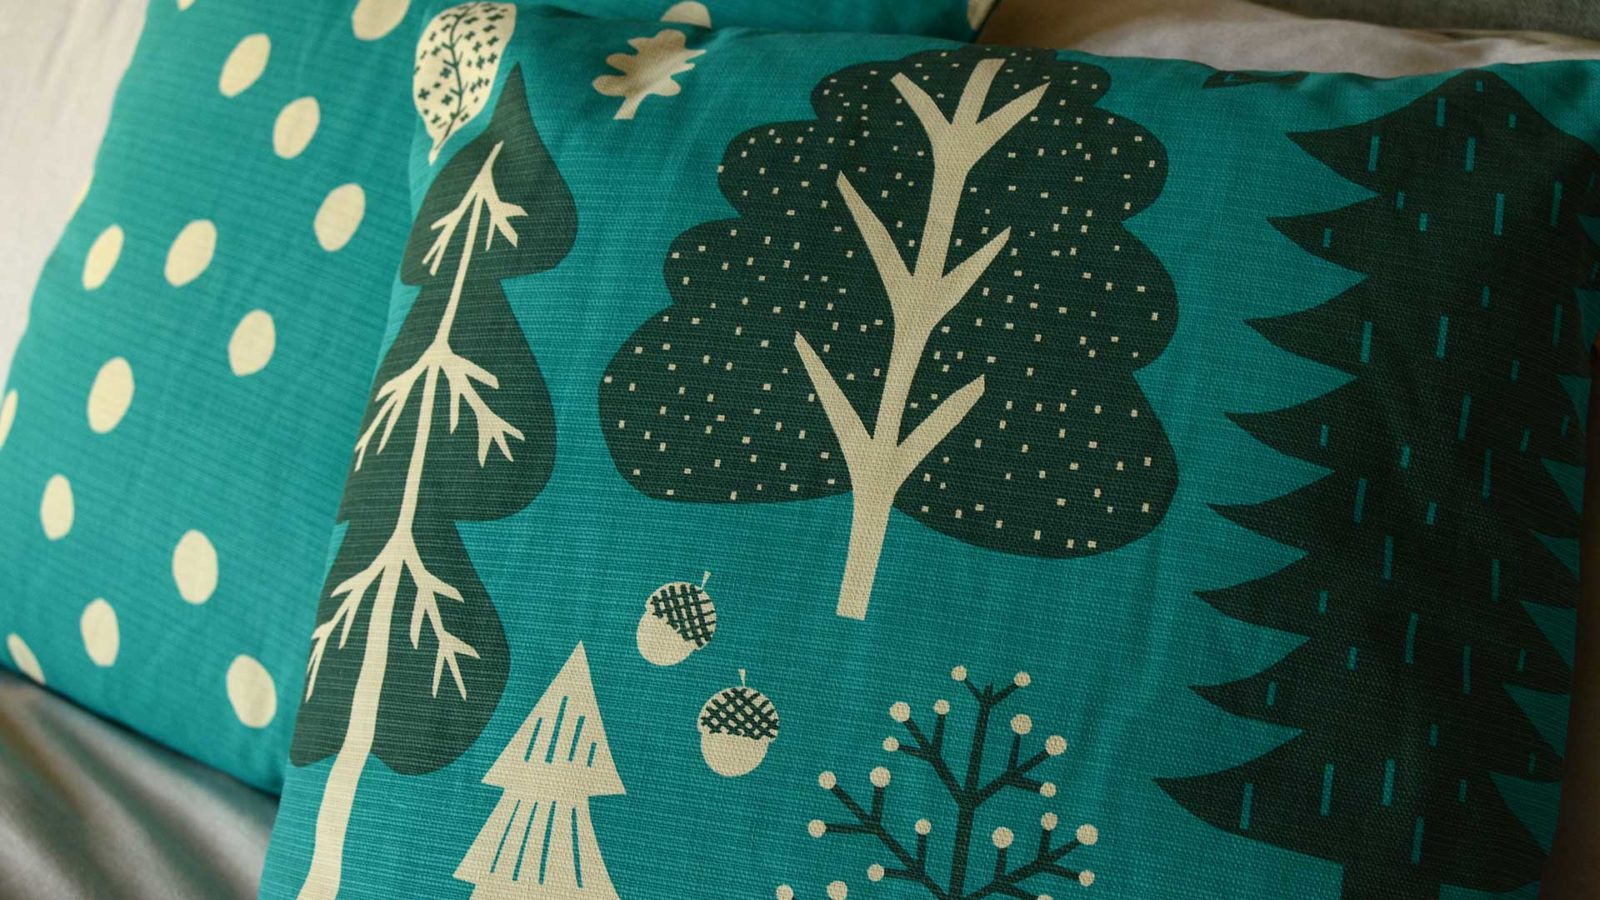 donna-wilson-cushion-Forest-turquoise